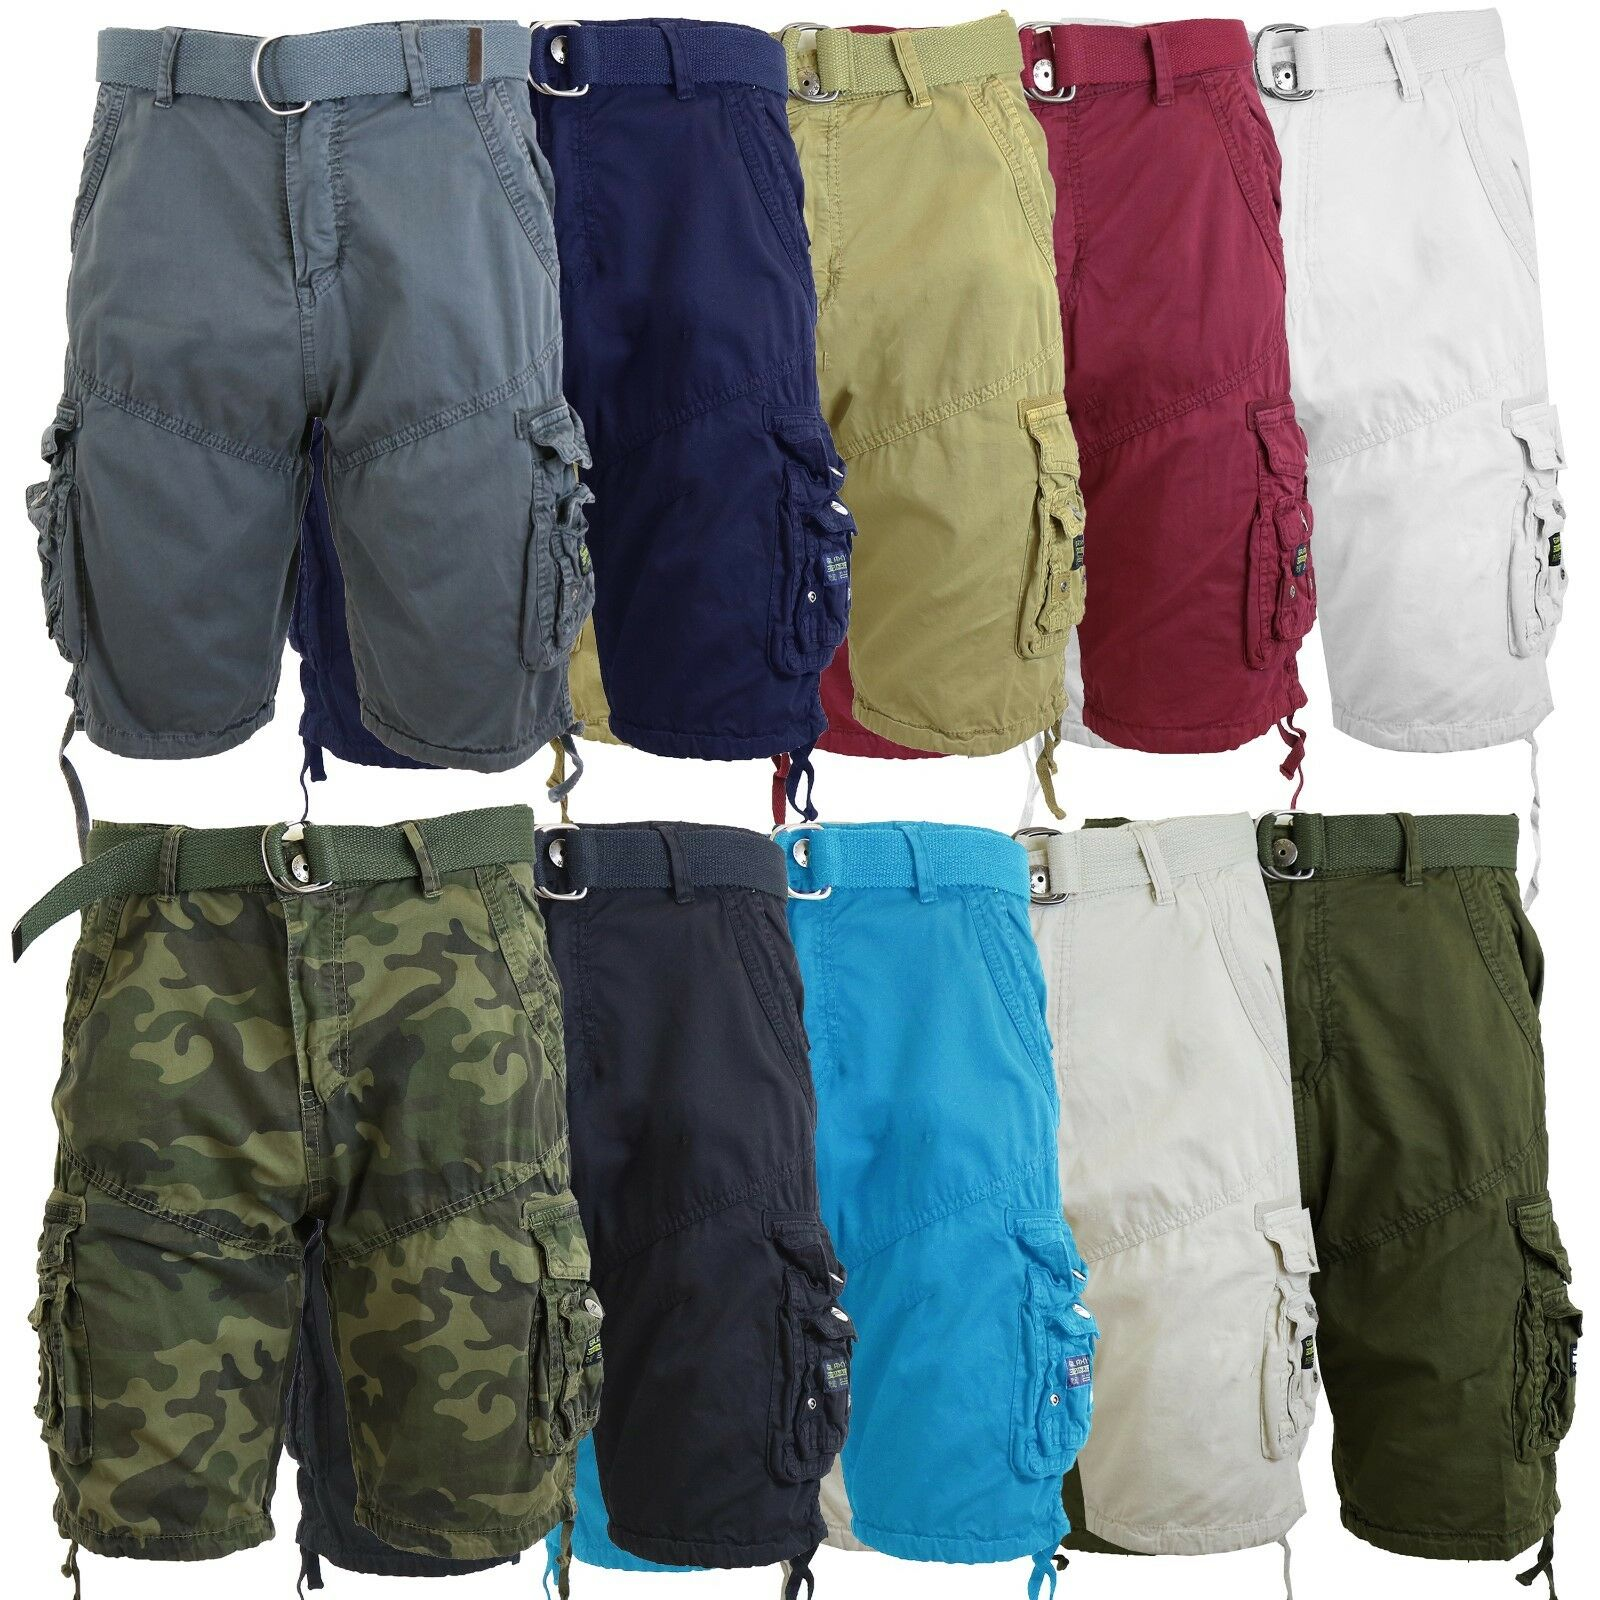 Mens Cotton Belted Cargo Shorts Vintage Distressed Lounge Hiking Sizes 30-48 NWT Clothing, Shoes & Accessories